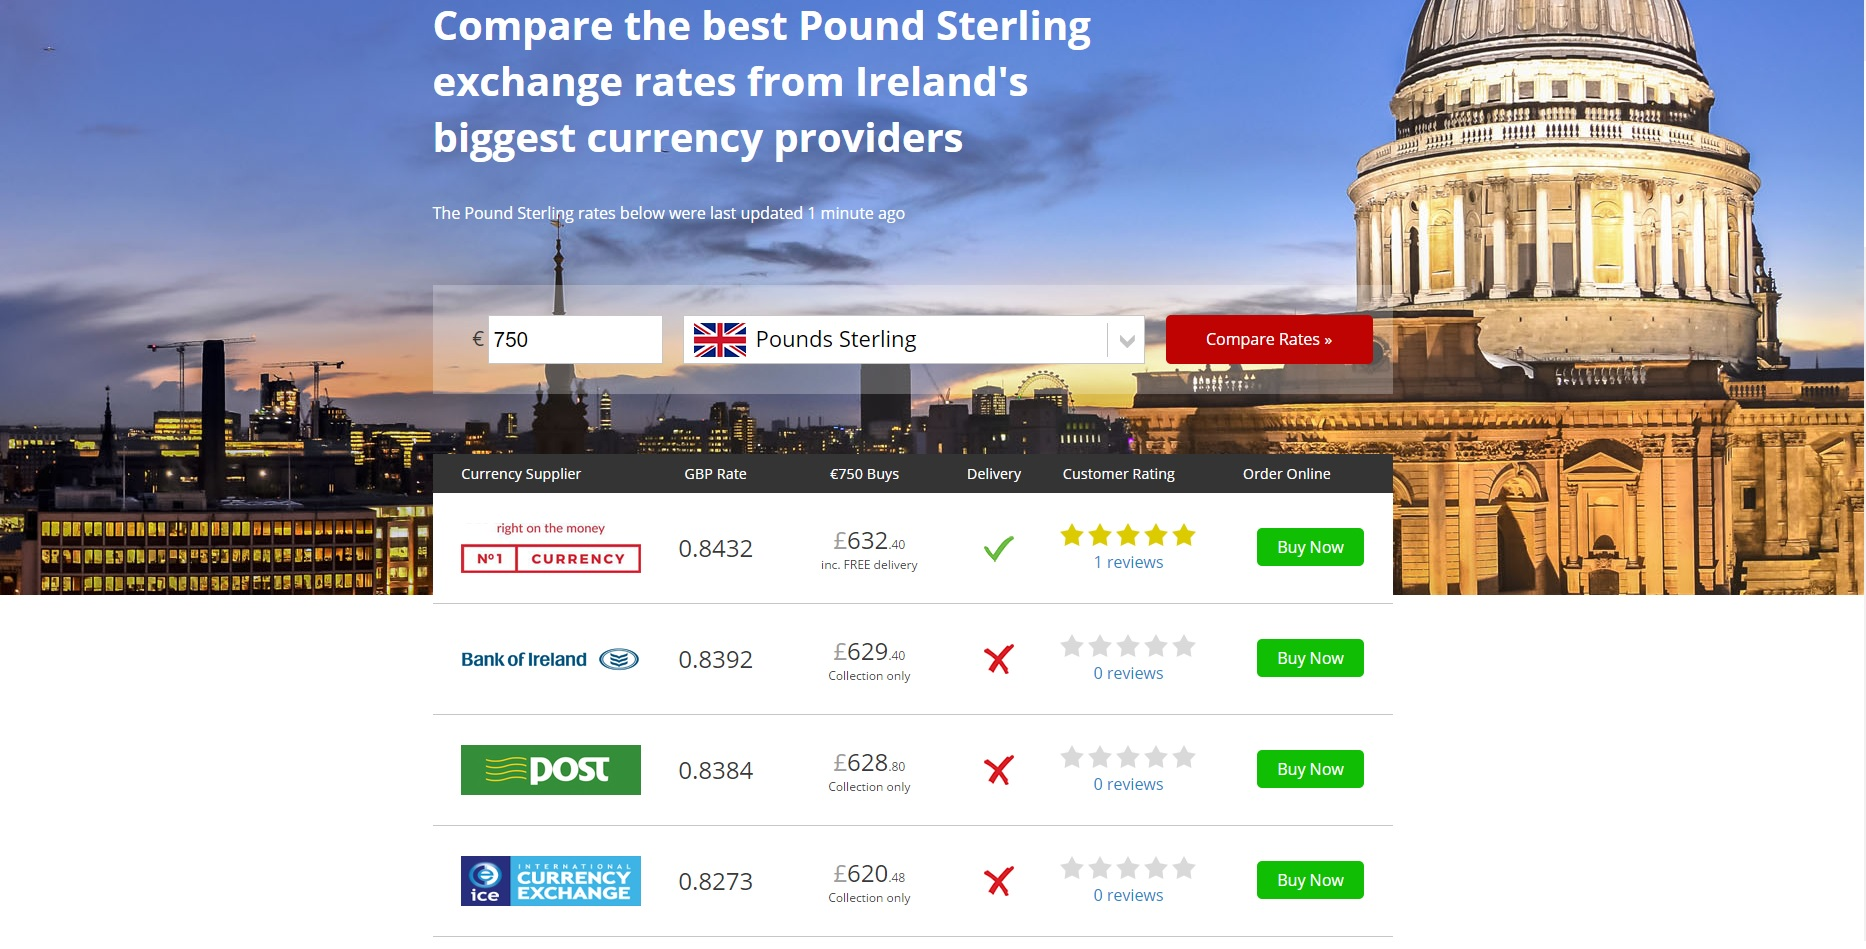 Compare Holiday Money Launches In Ireland Euro To Sterling Exchange Rate And Currency Suppliers